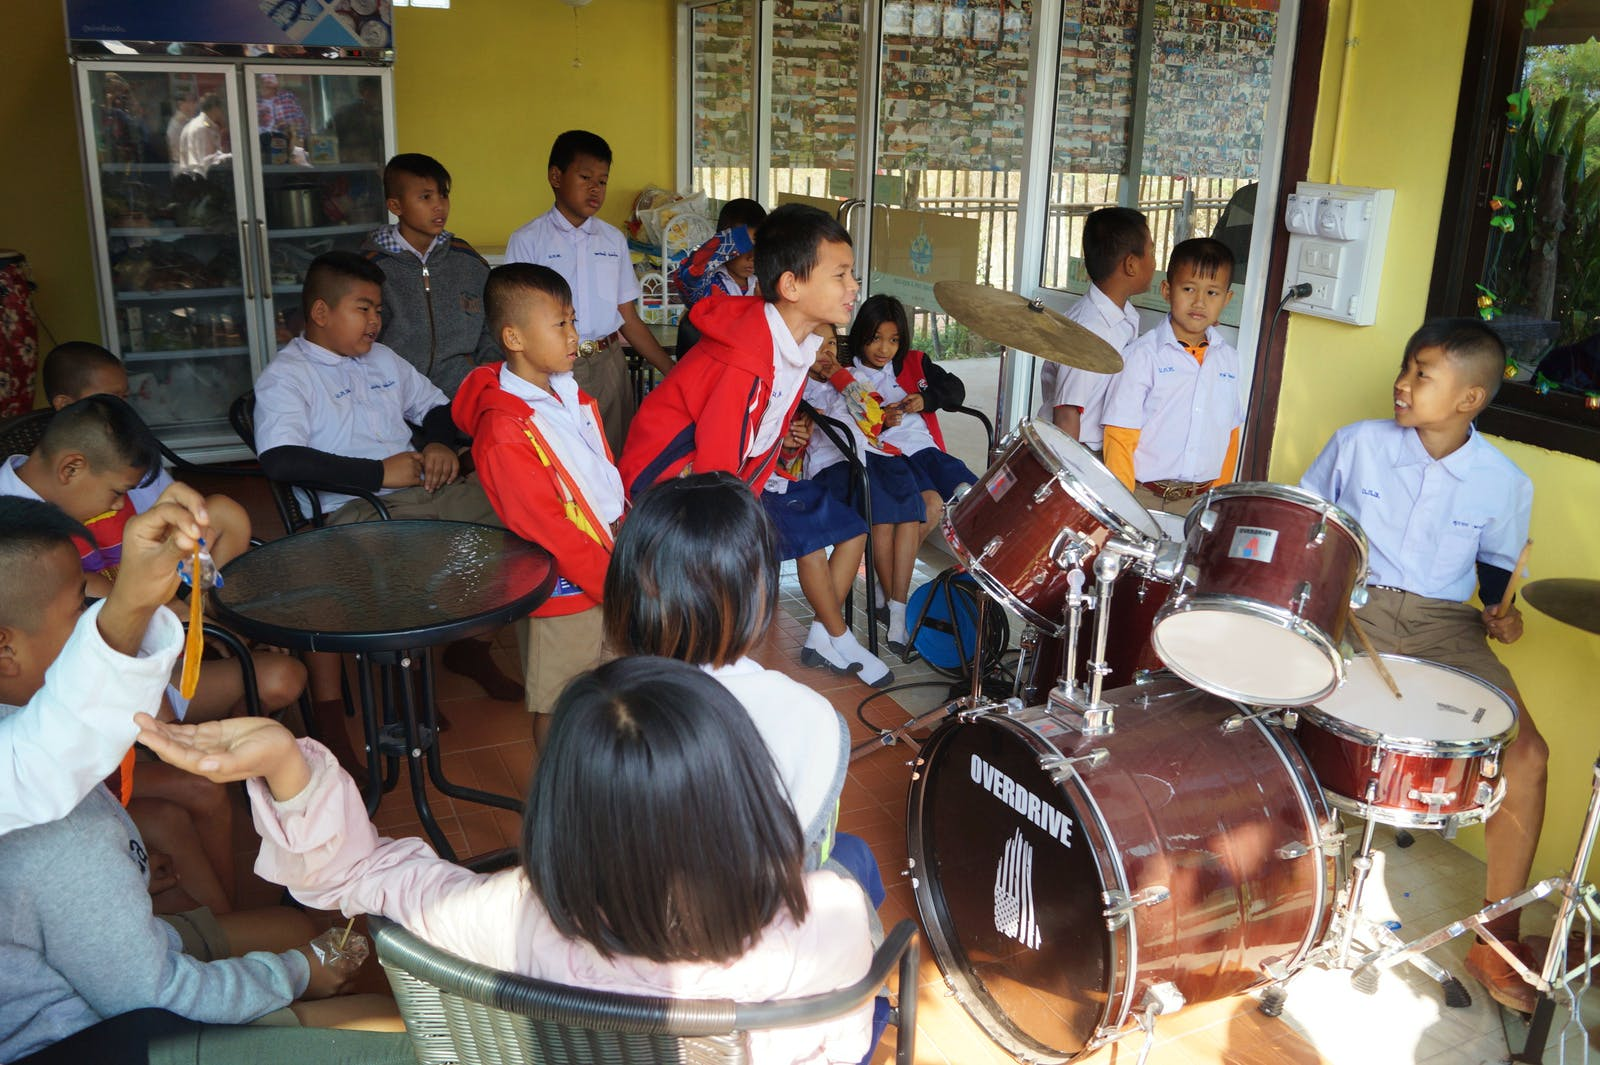 Teach children music at temple schools